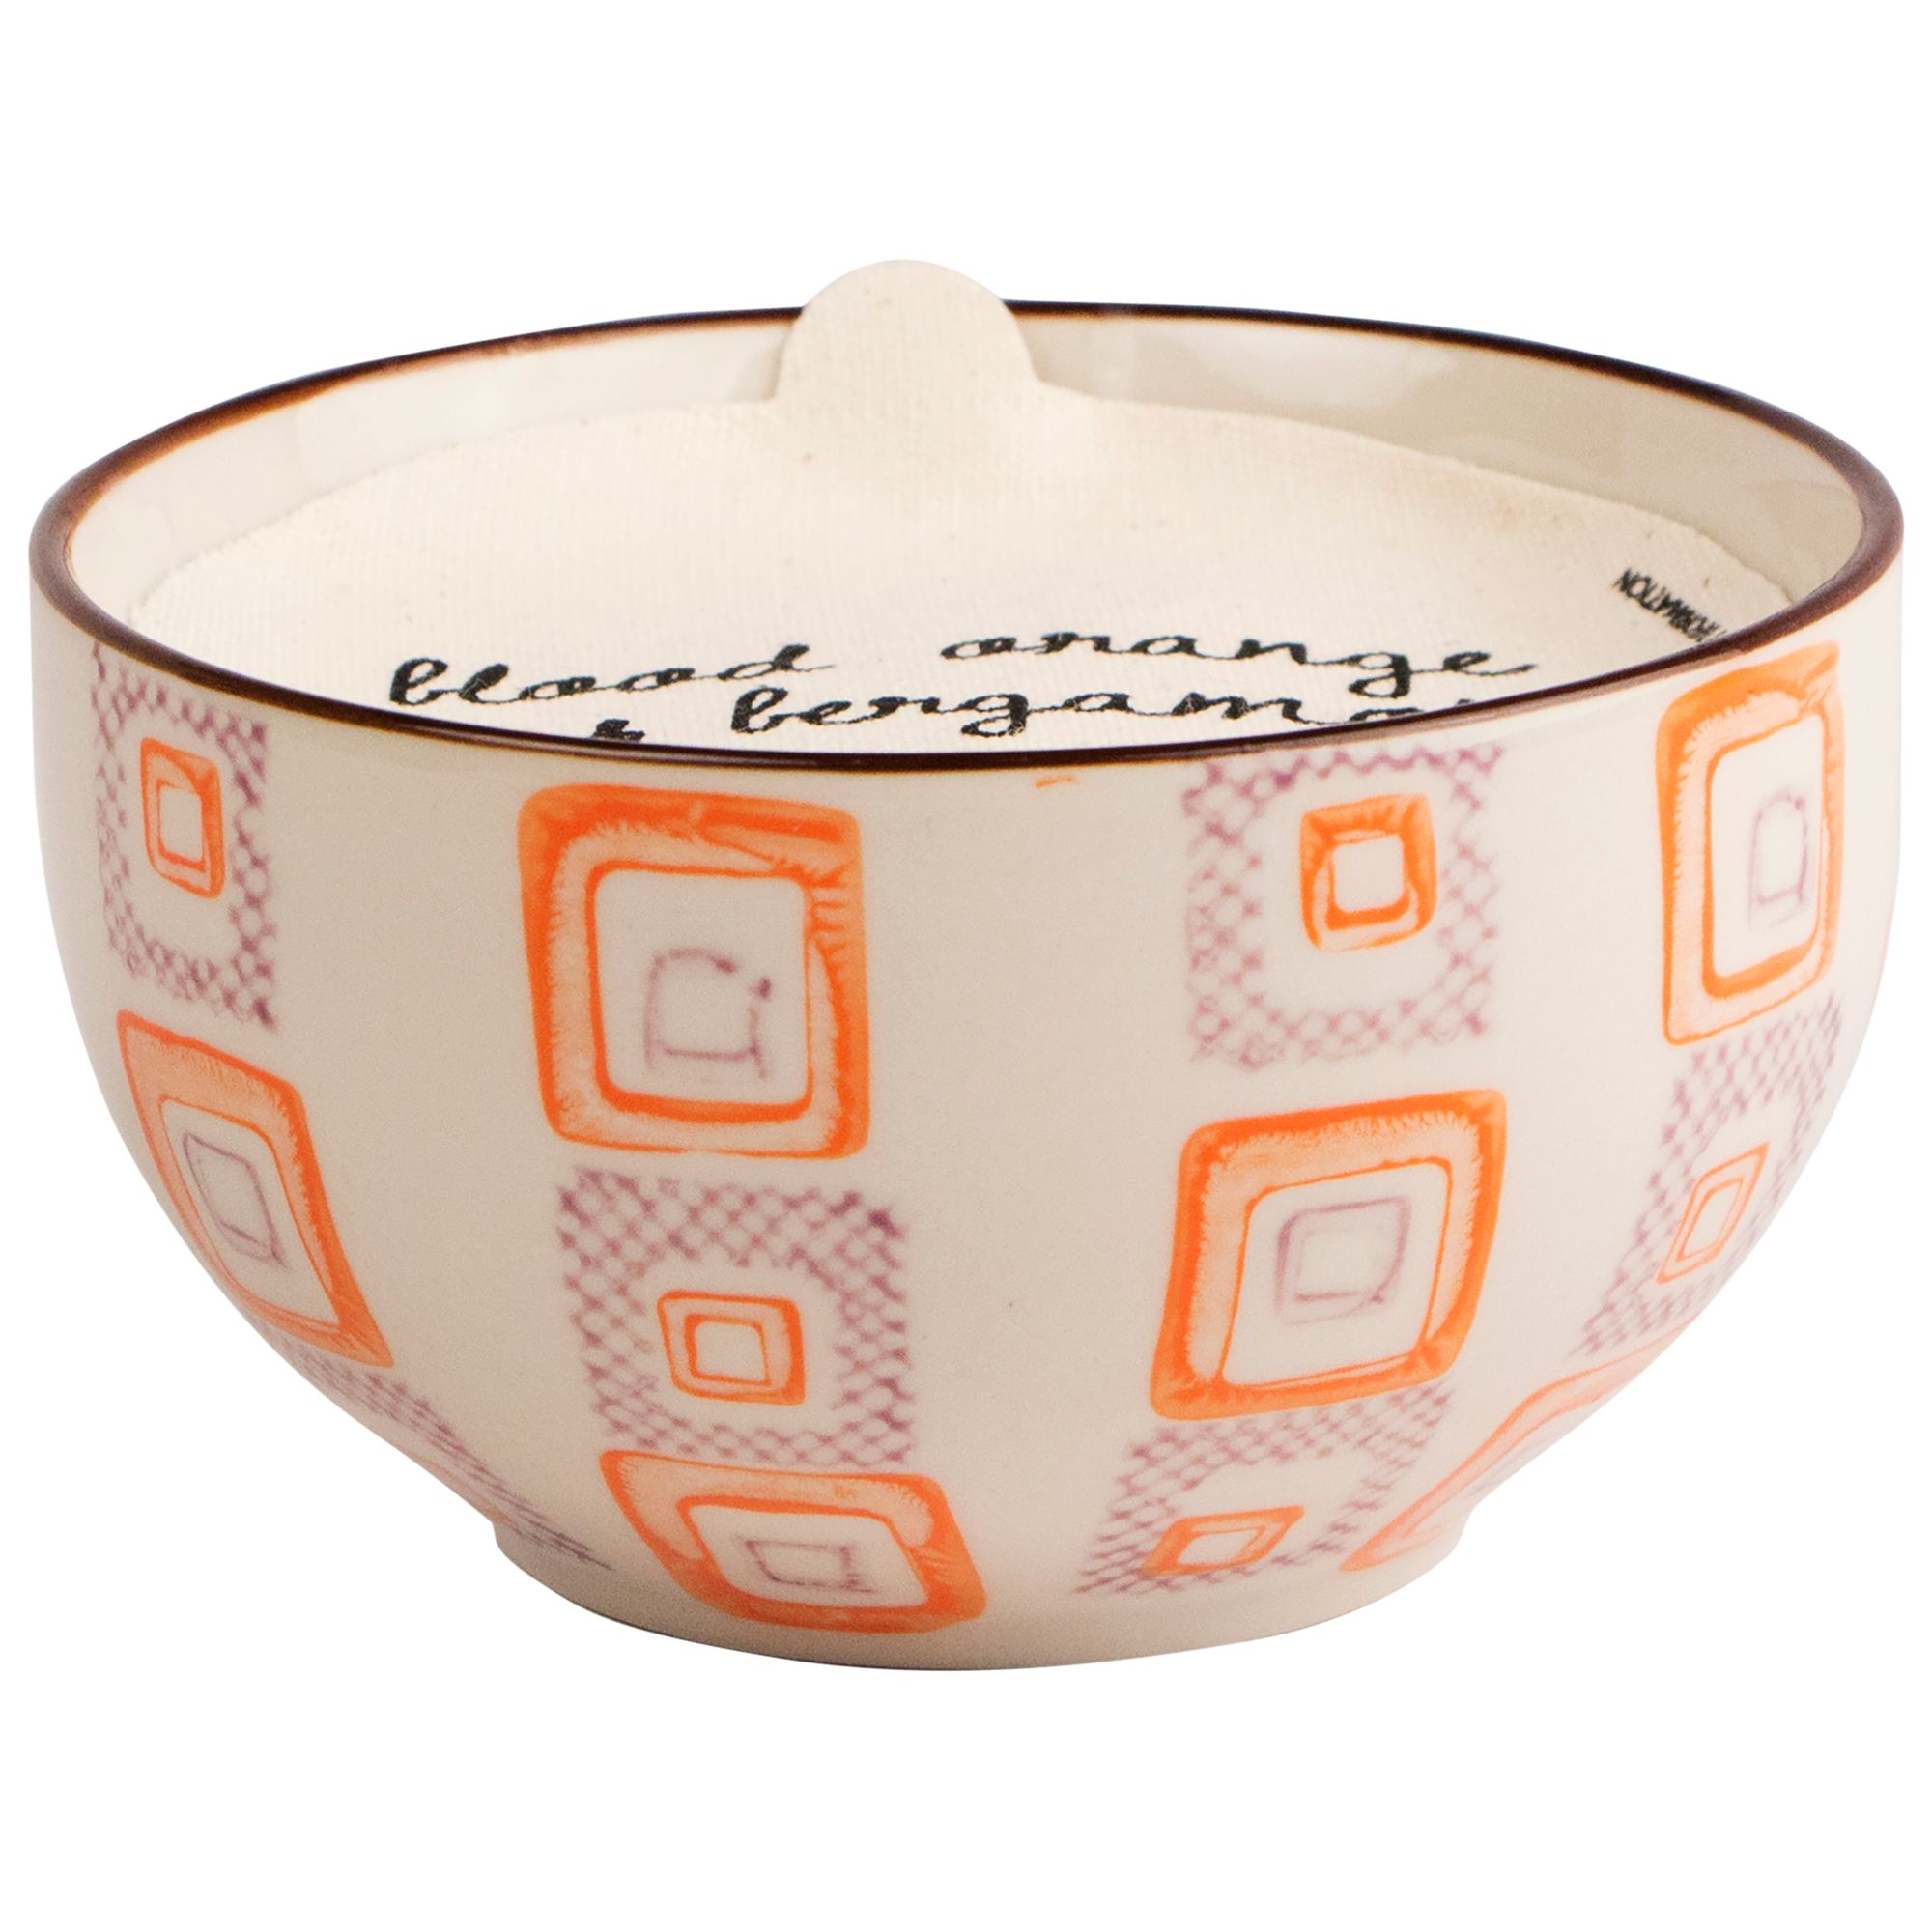 Paddywax Paddywax Boheme Small Blood Orange and Bergamot Scented Candle